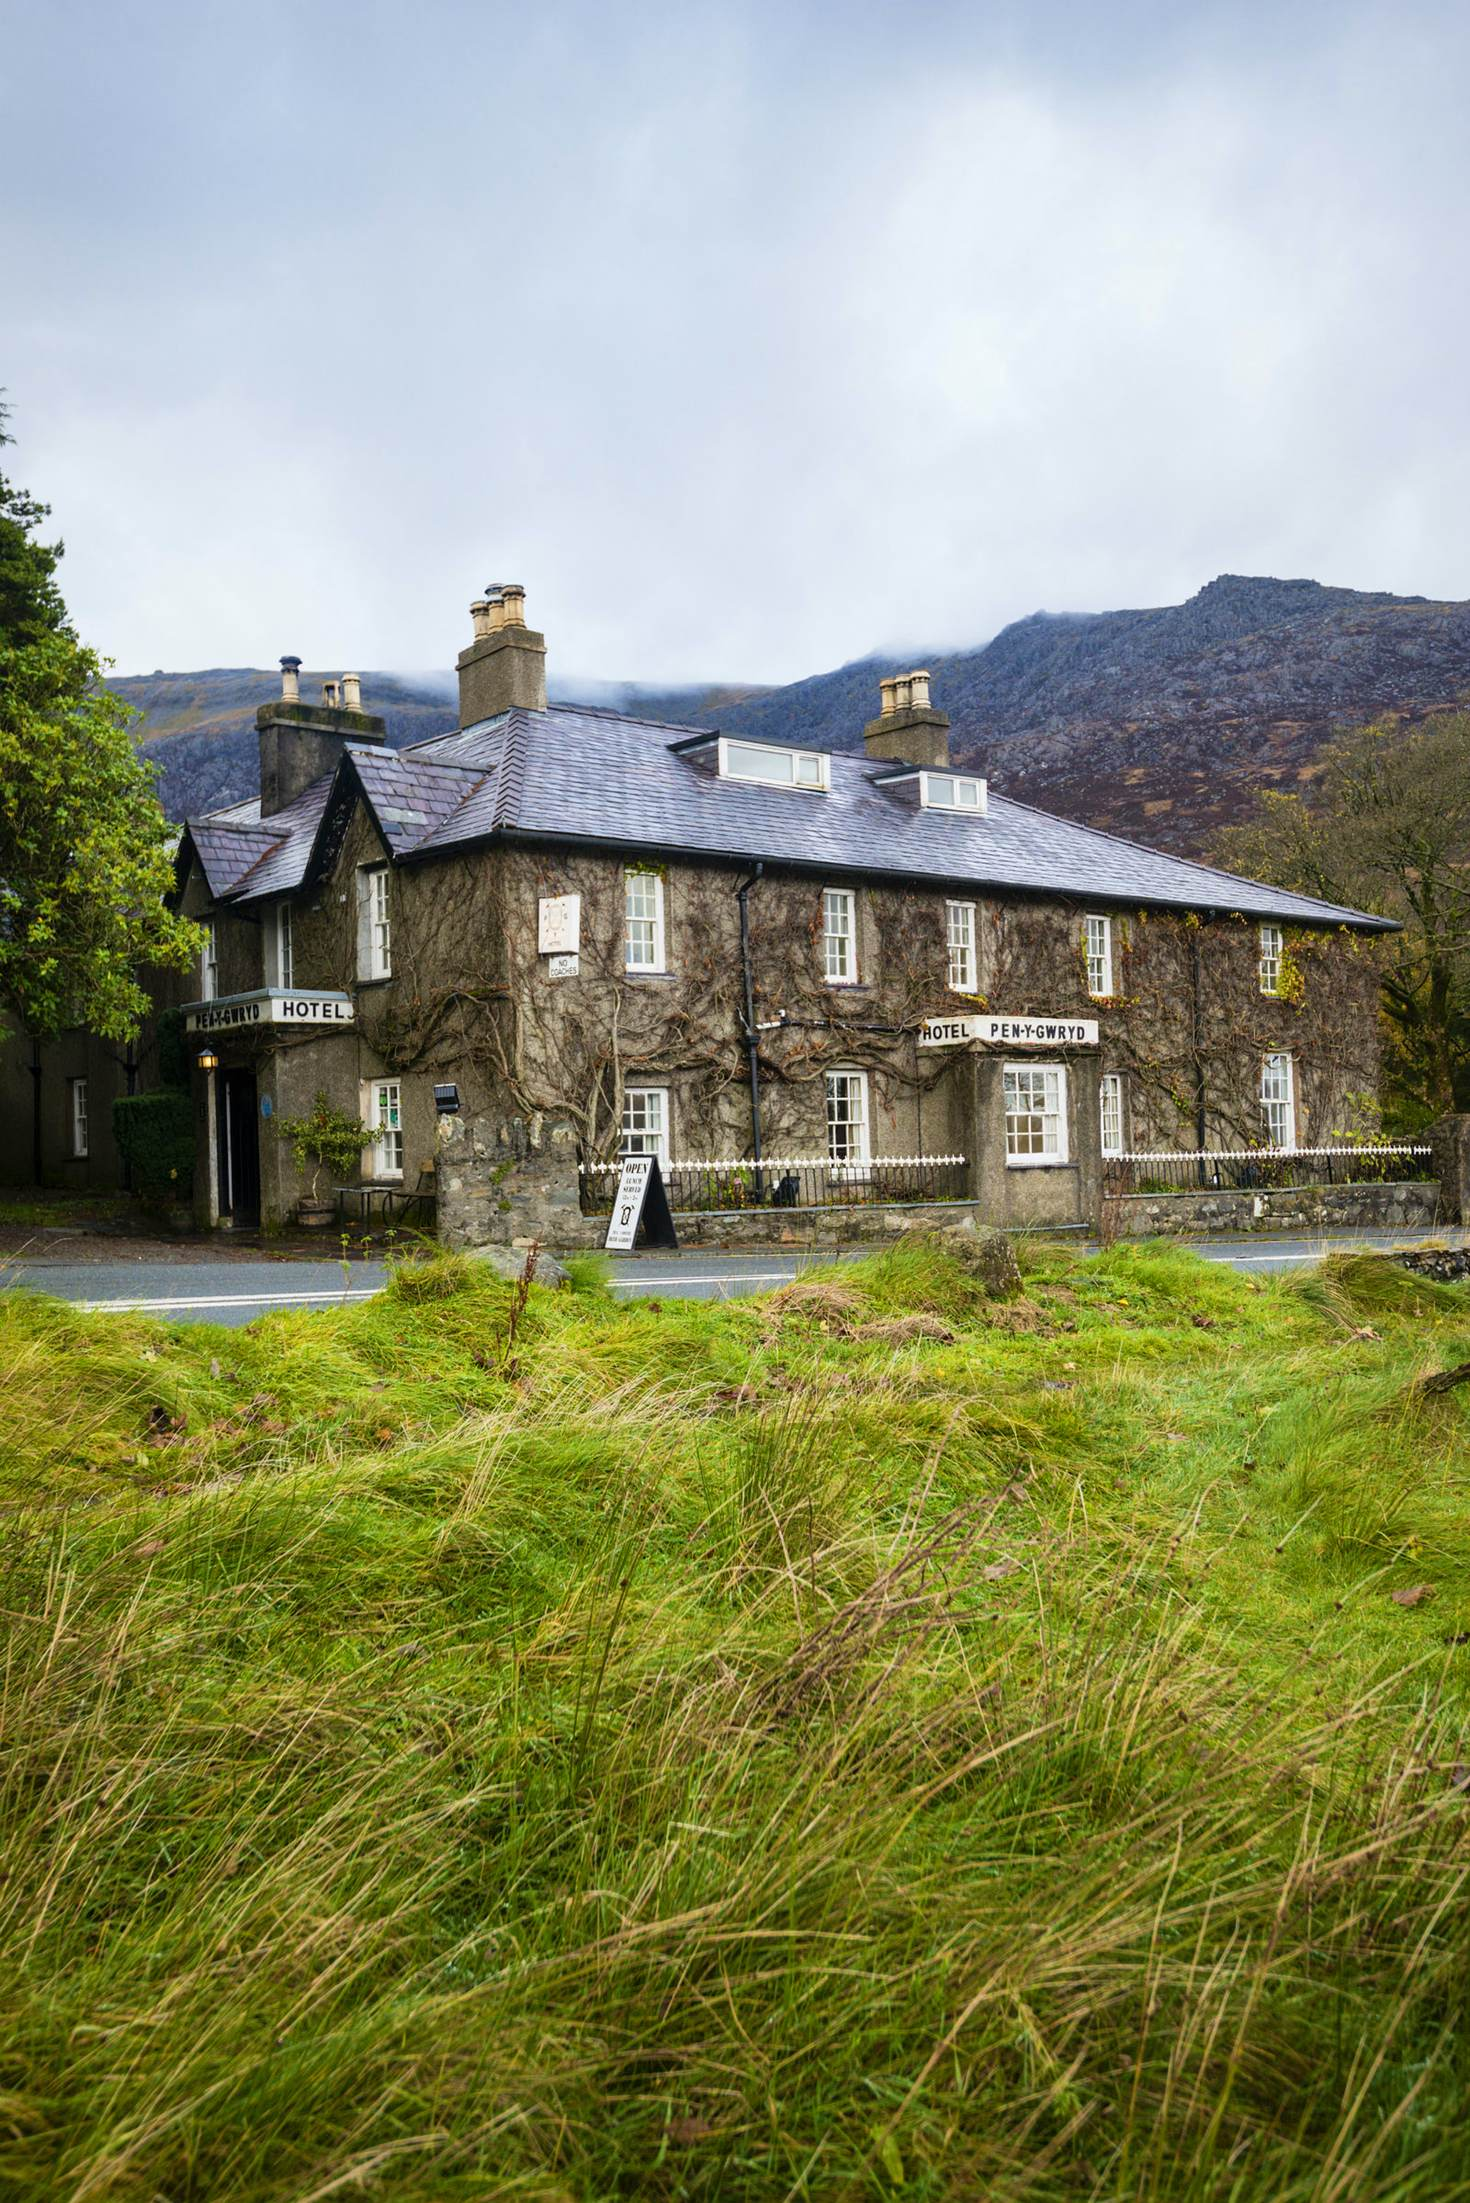 Hotel Pen-y-Gwryd © Justin Foulkes / Lonely Planet